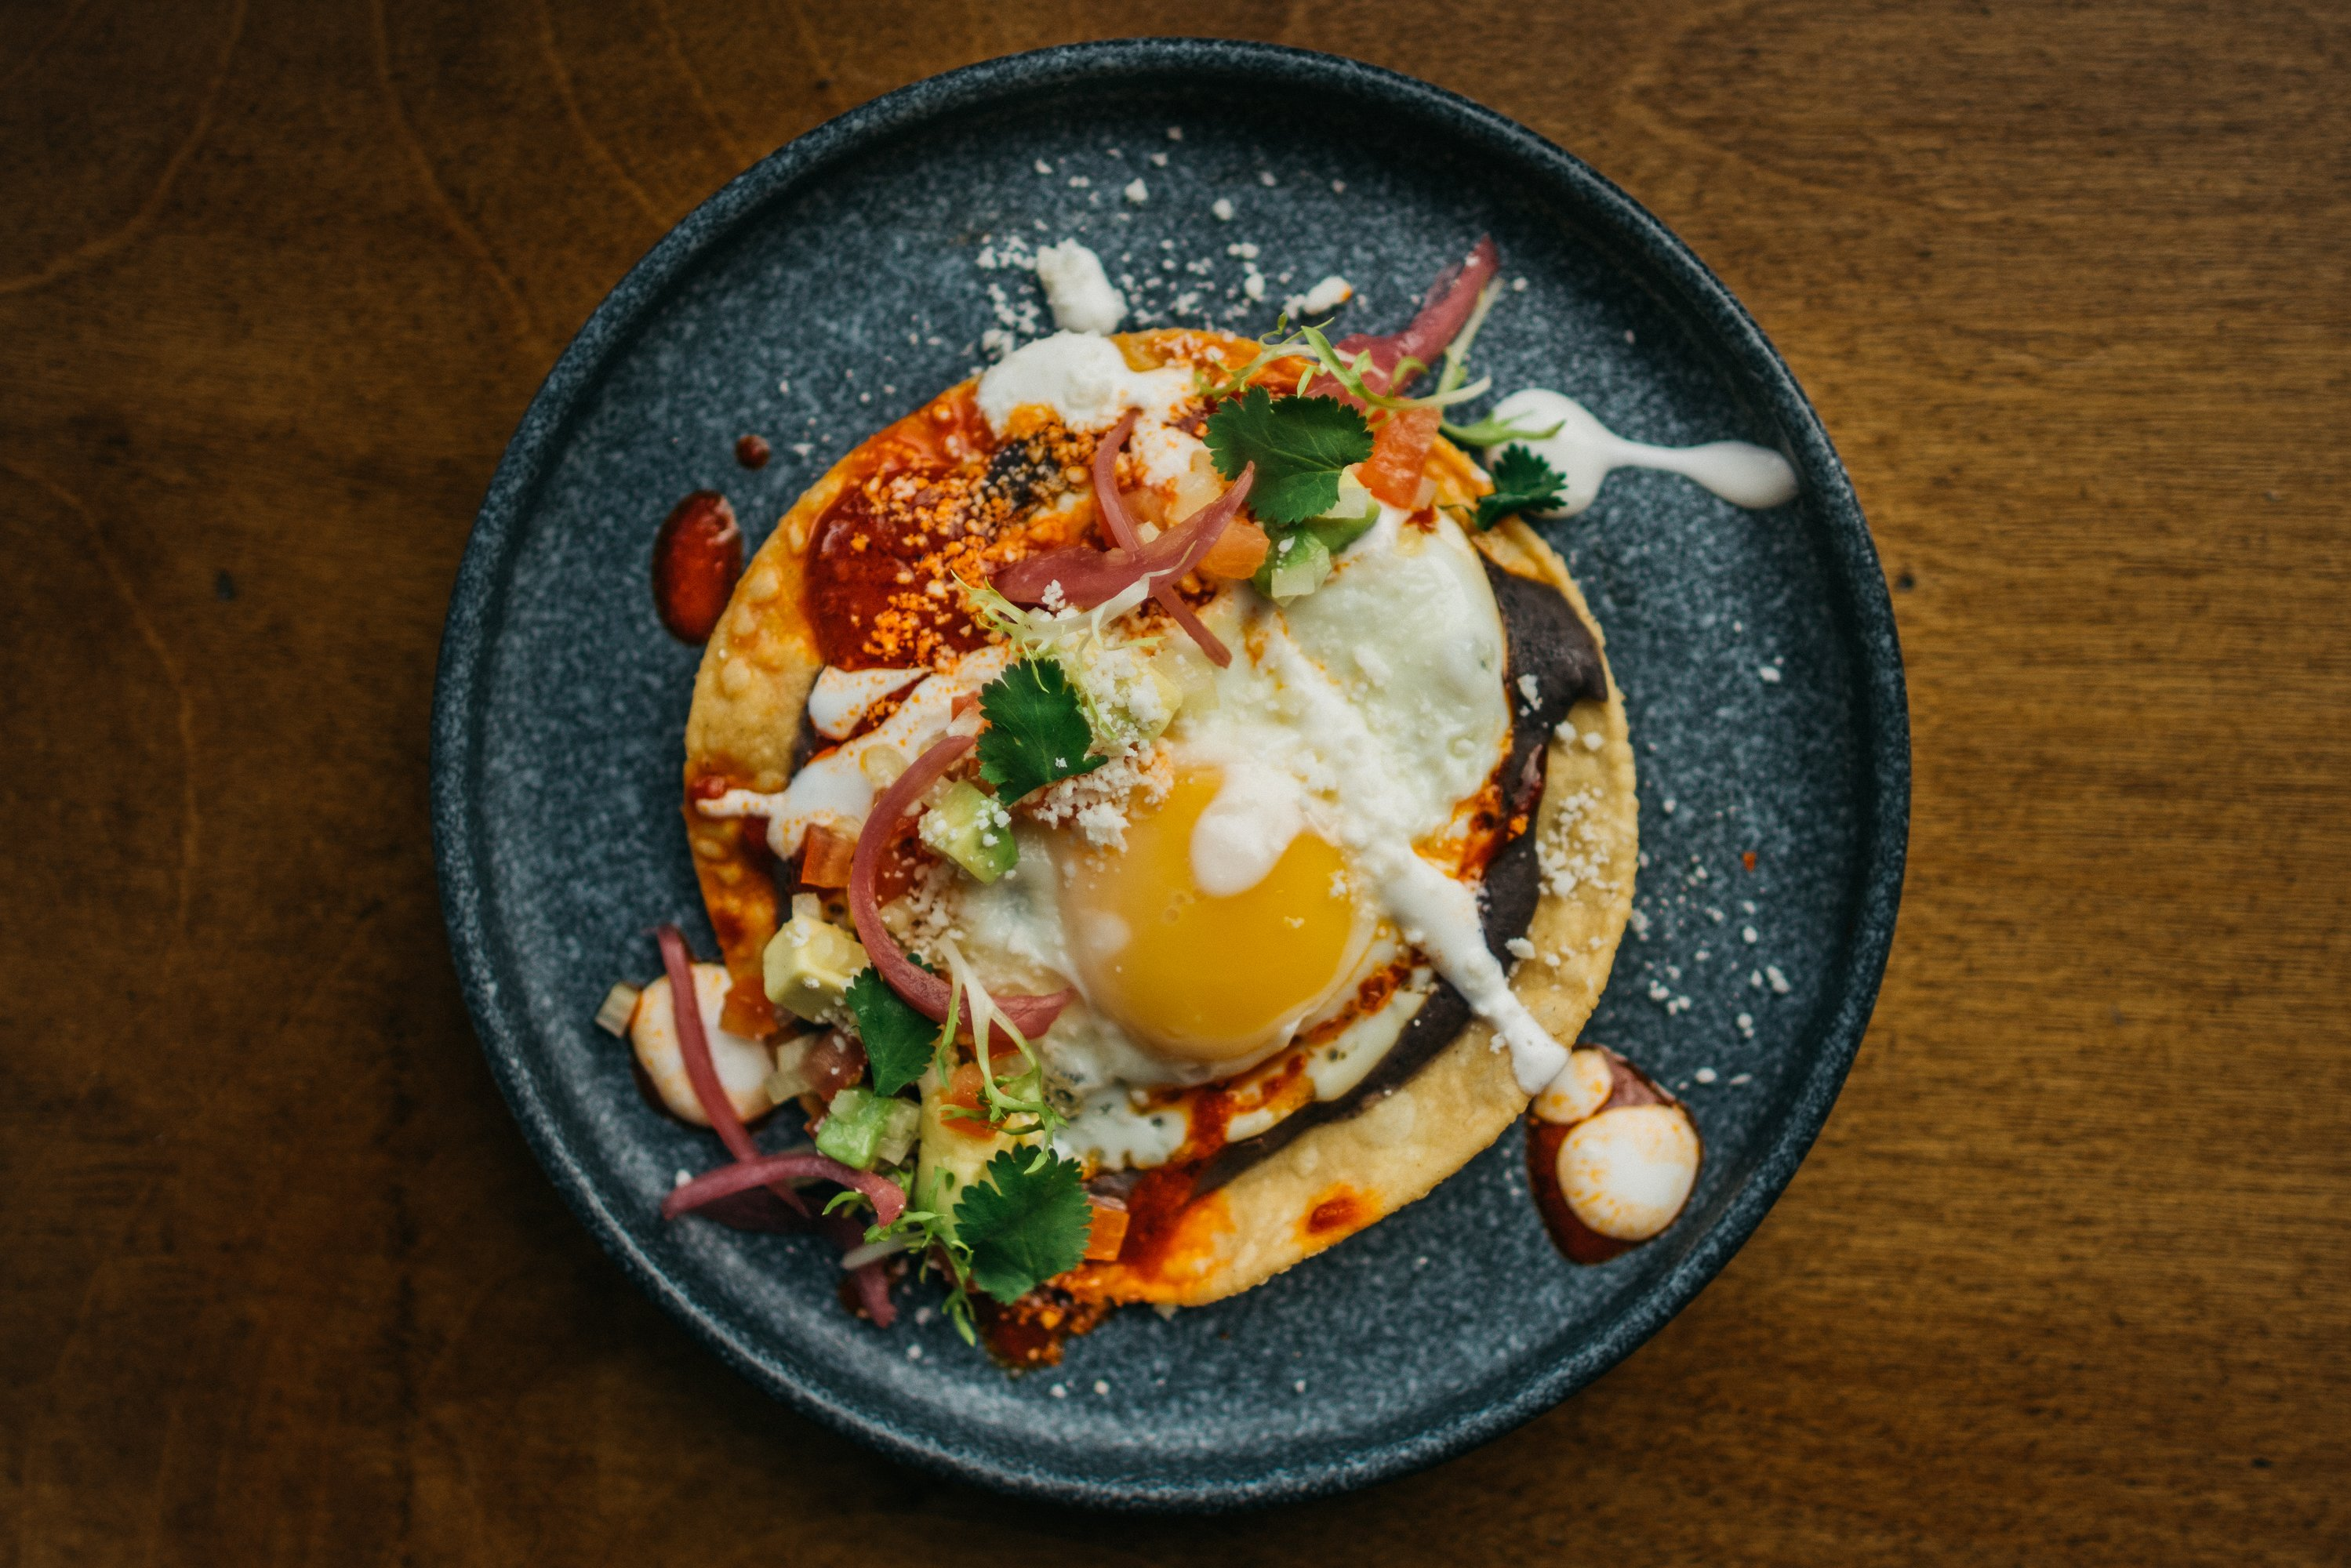 The breakfast tostada at Buena Vida. Photograph by Timothy Yantz.